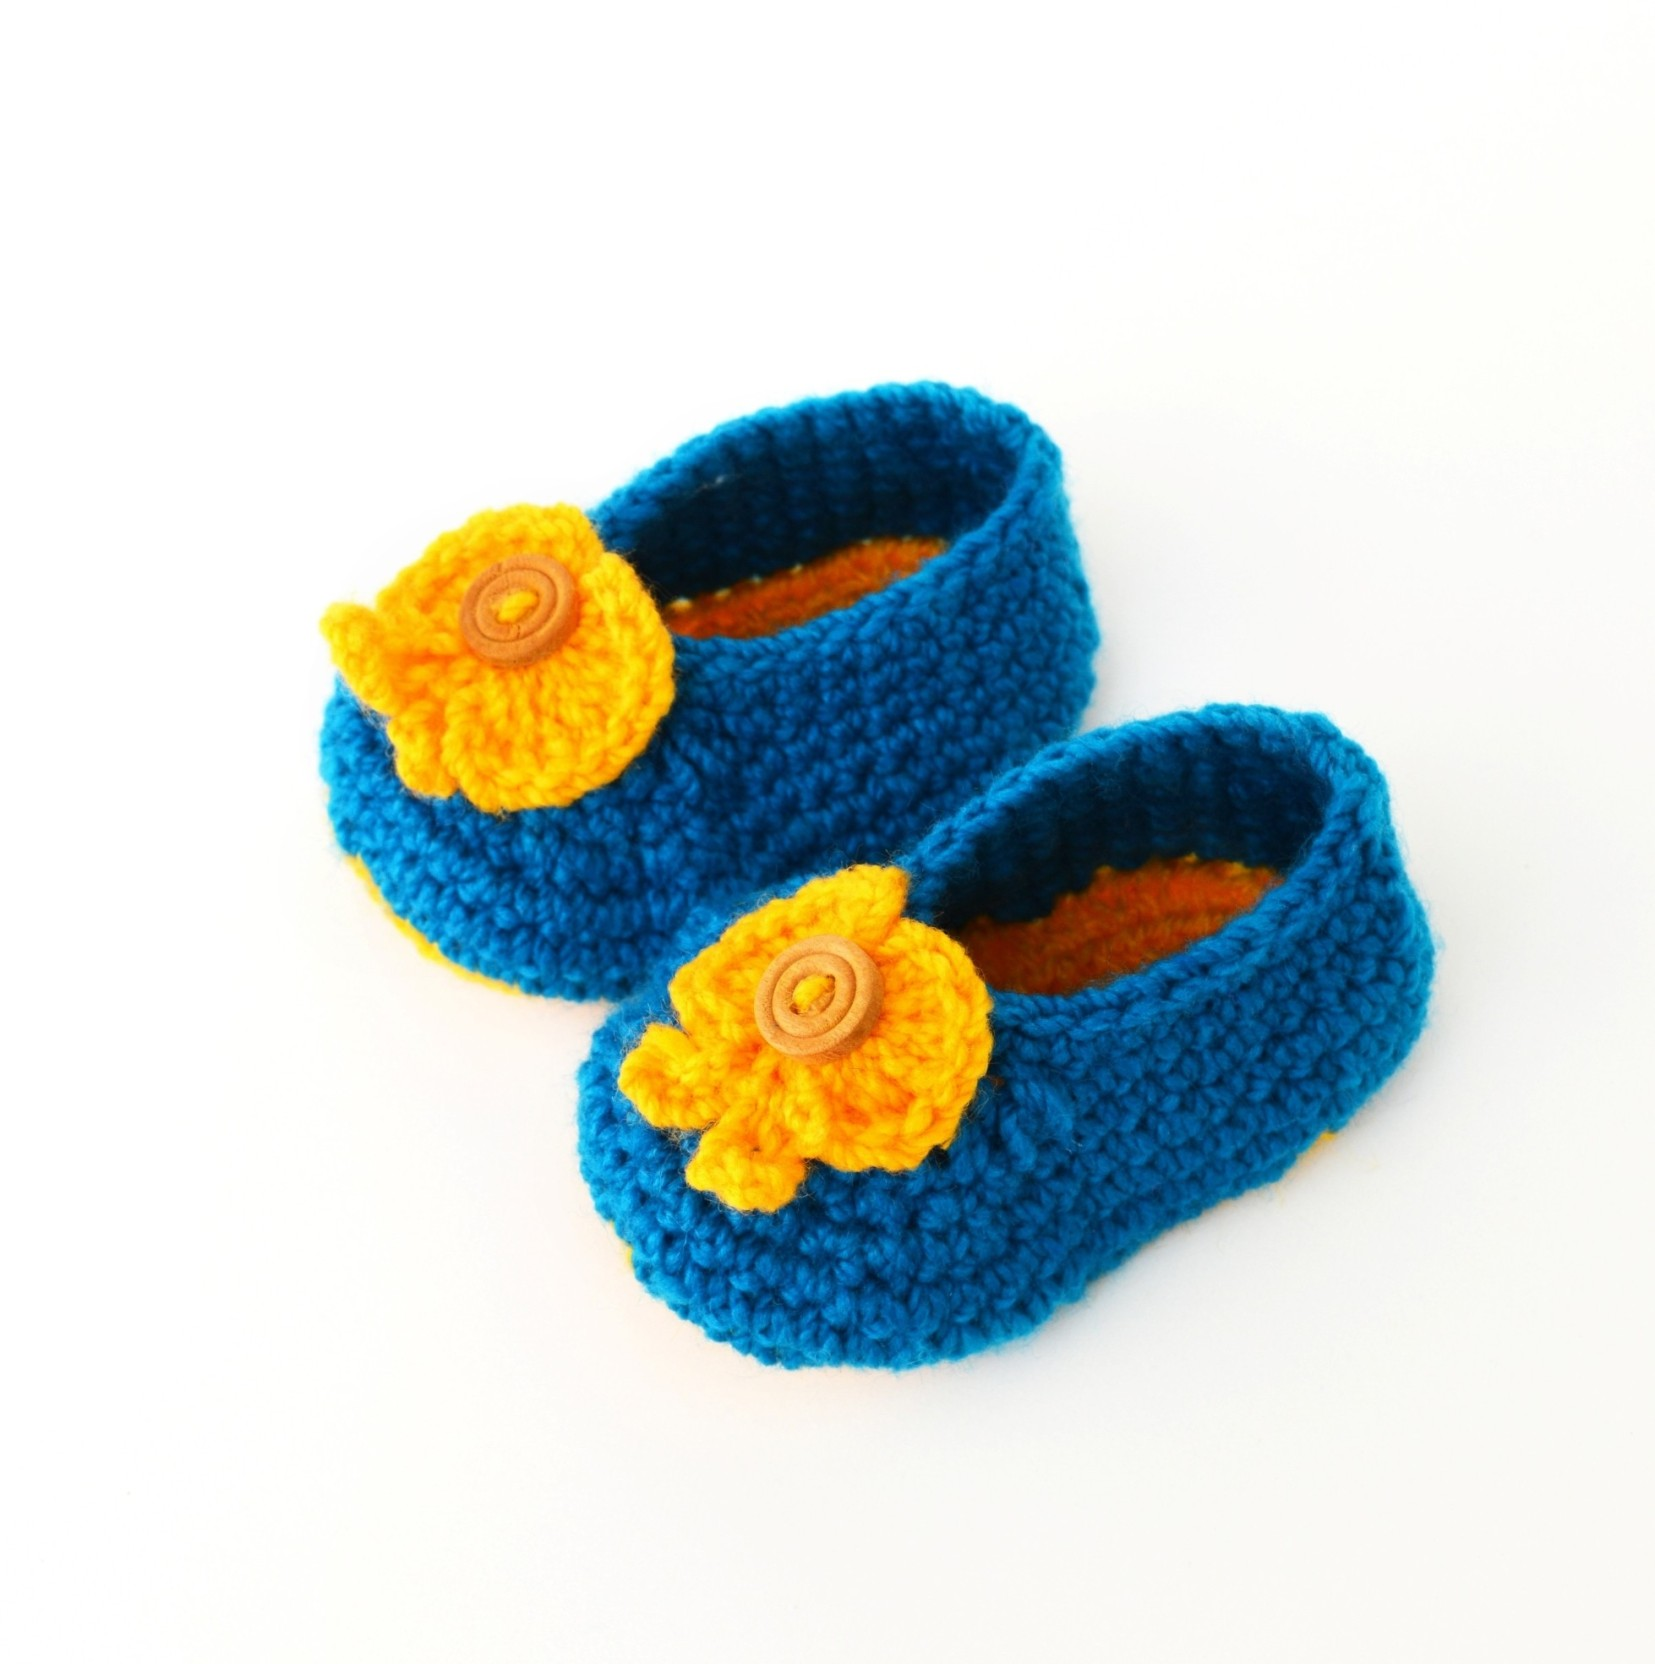 Love Crochet Art Crochet Baby Booties Woolen Booties For 0 To 6